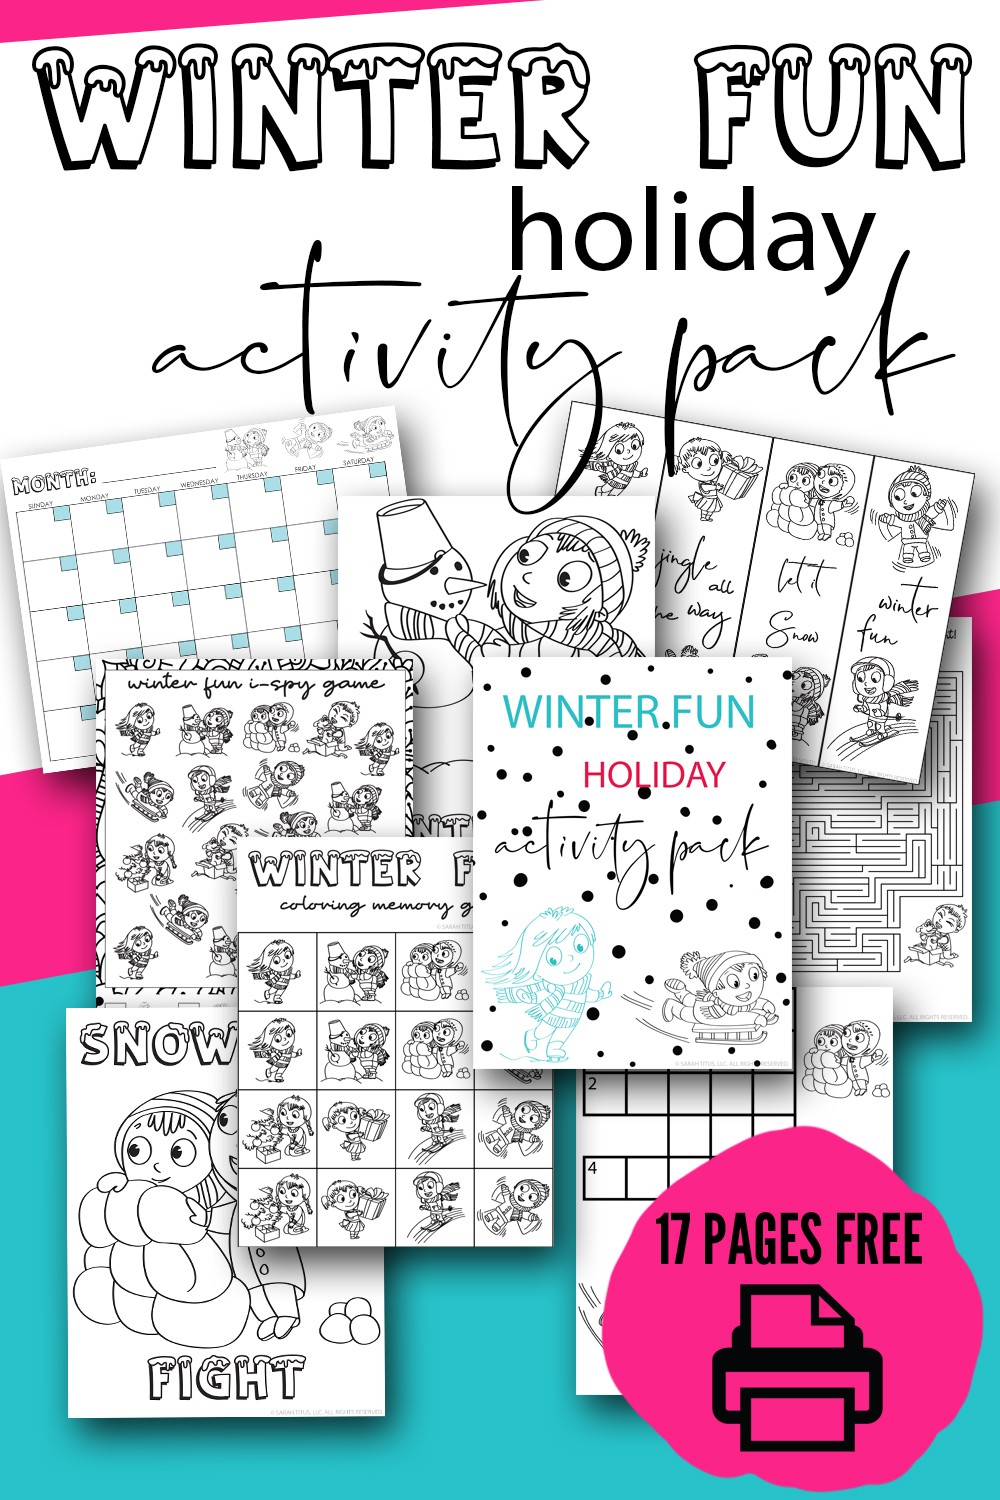 5 Printable Adult Coloring Pages Of Love, Hope, Peace, Dreams + ... | 1500x1000